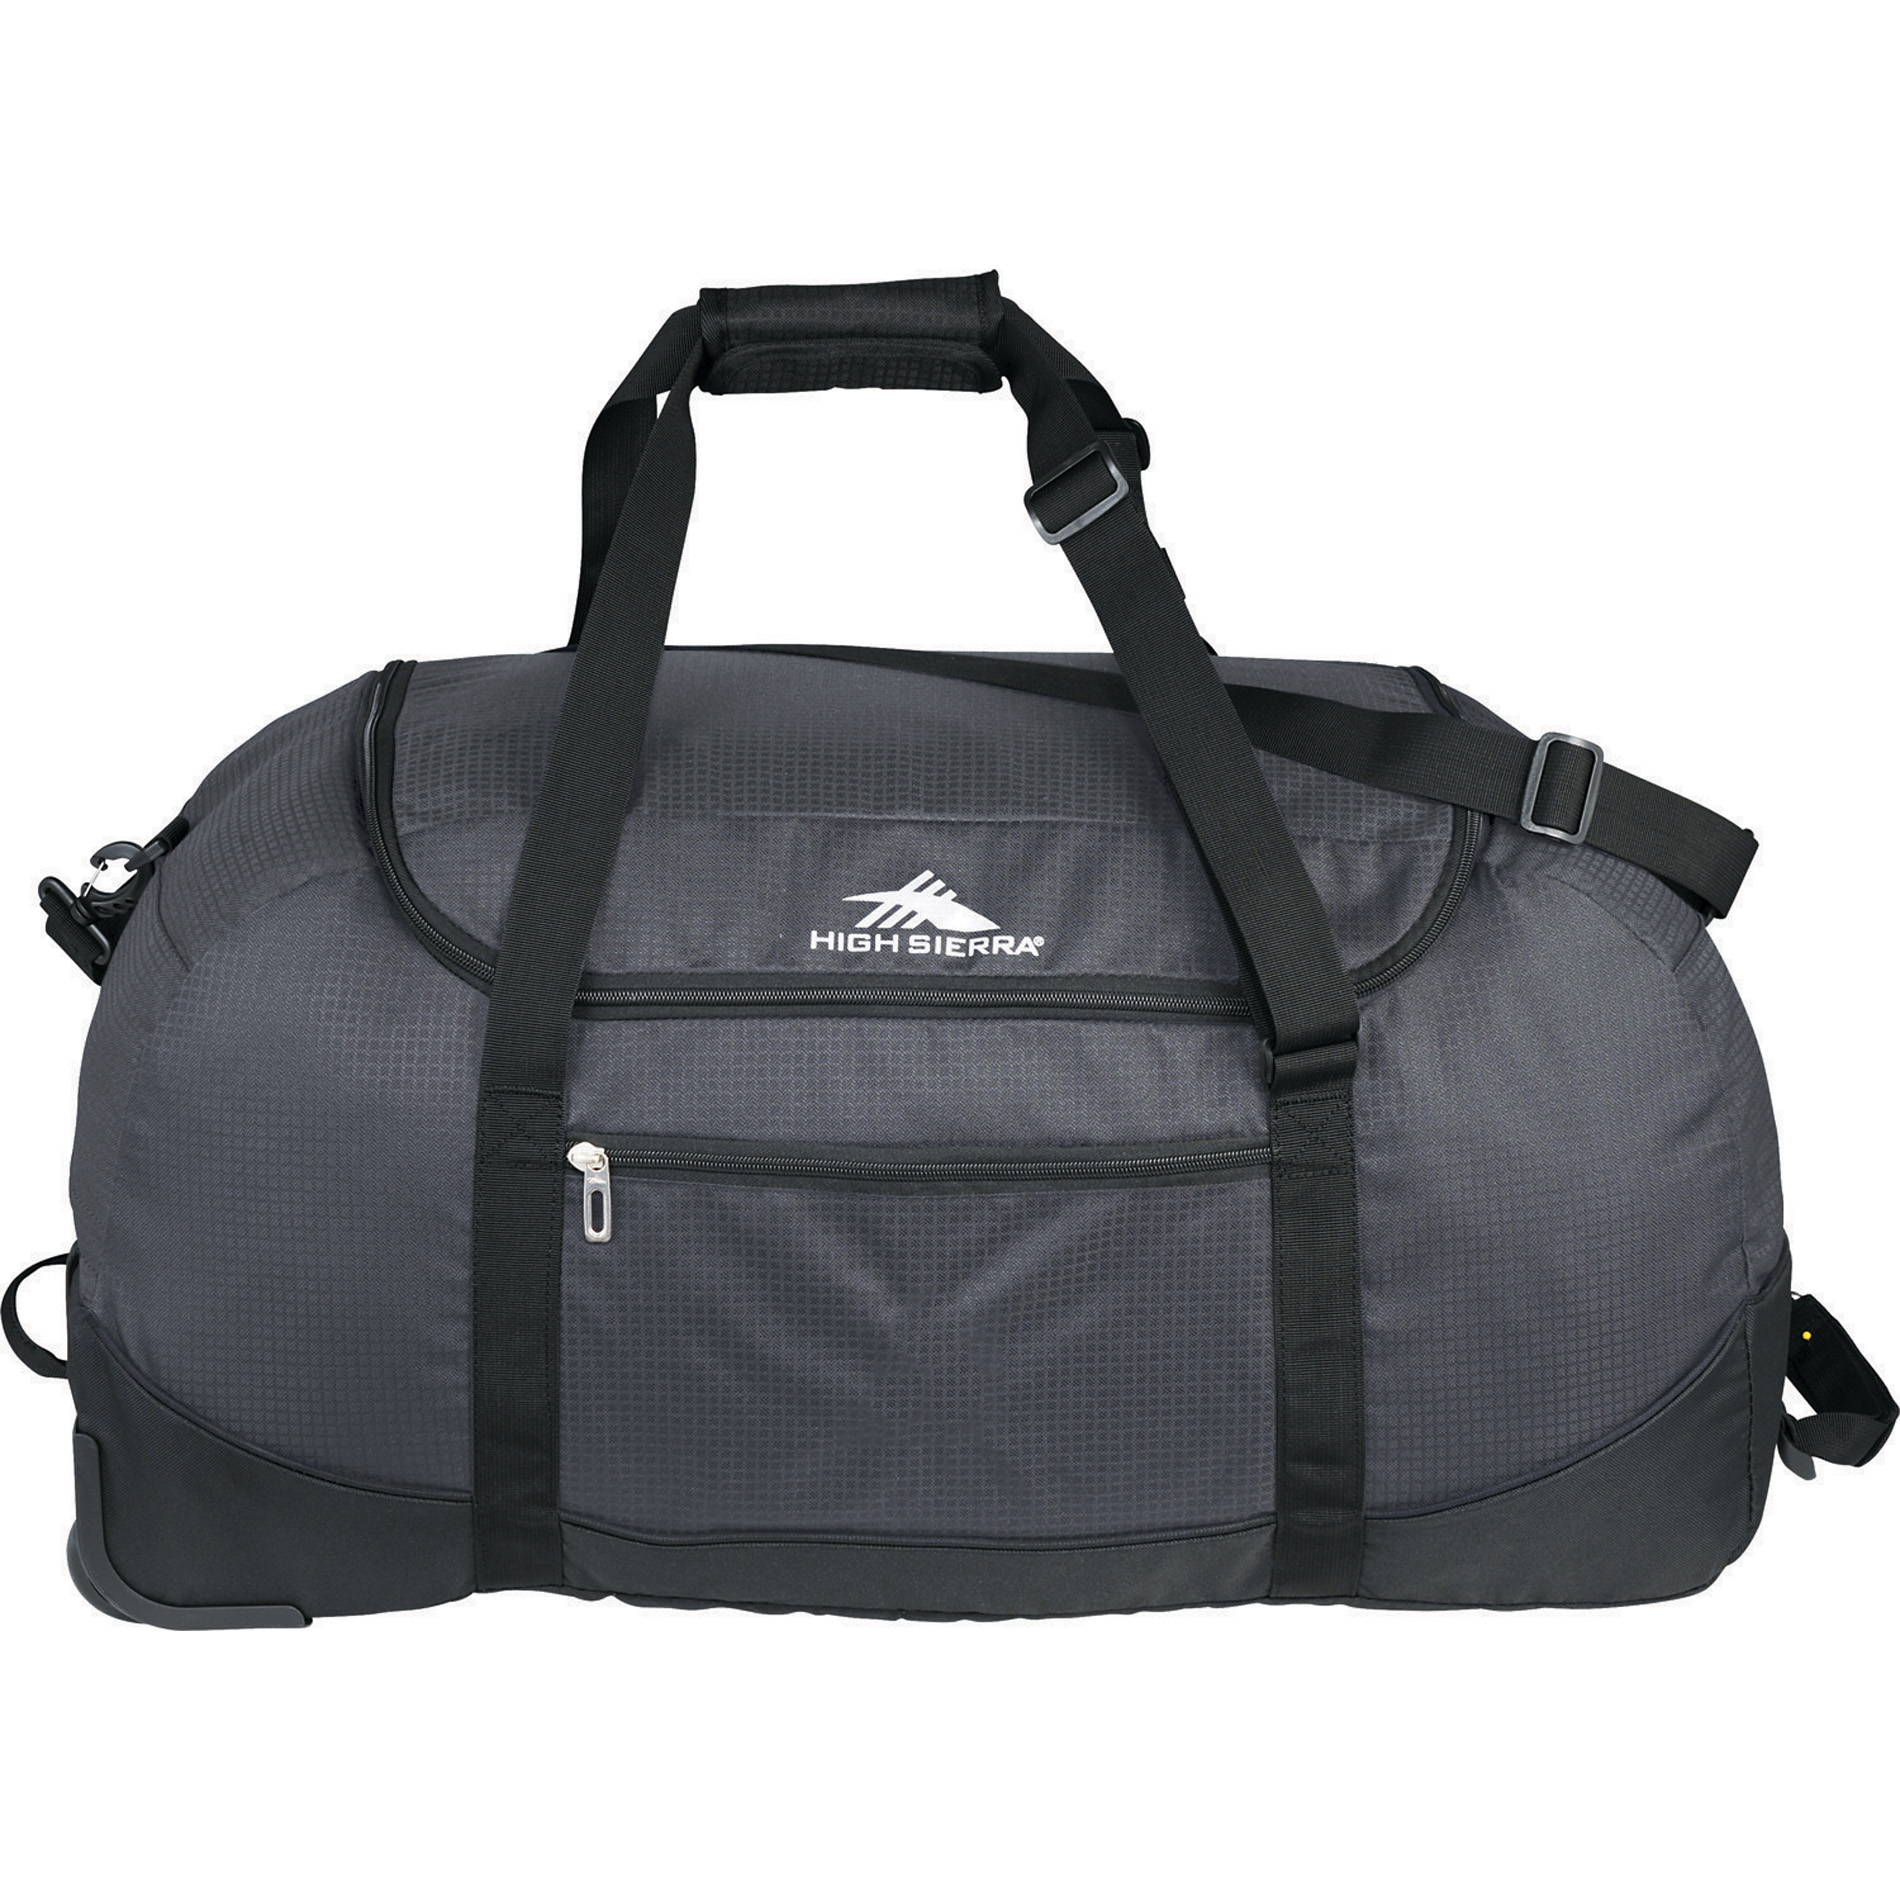 "High Sierra 8052-27 - Packable 30"" Wheel-N-Go Duffel Bag"